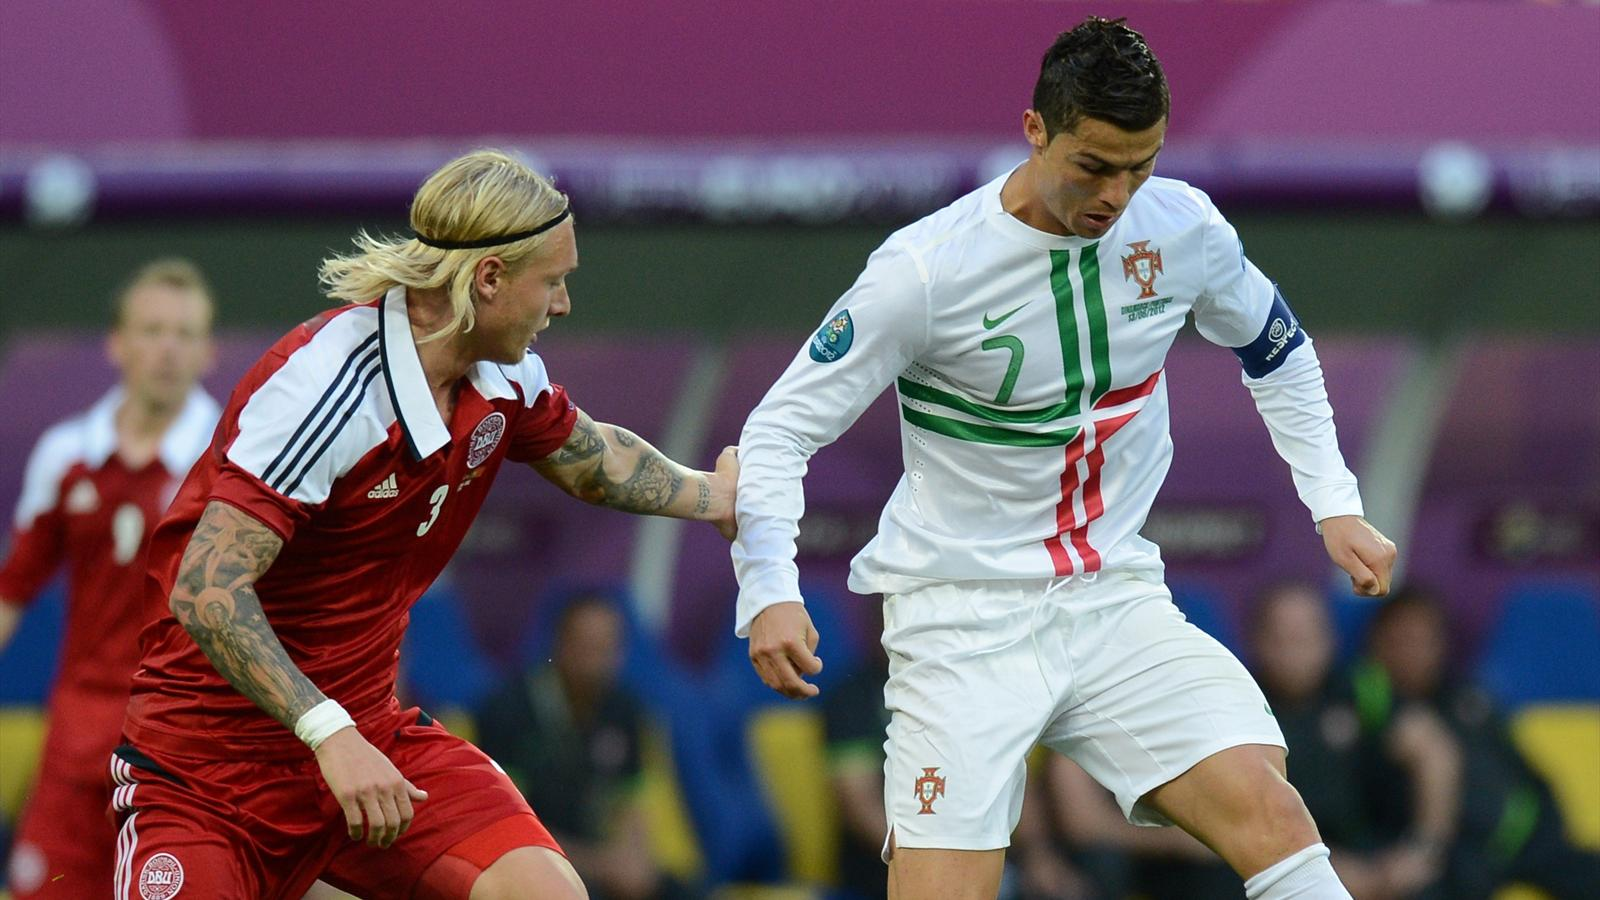 Match Danemark vs Portugal en direct live streaming